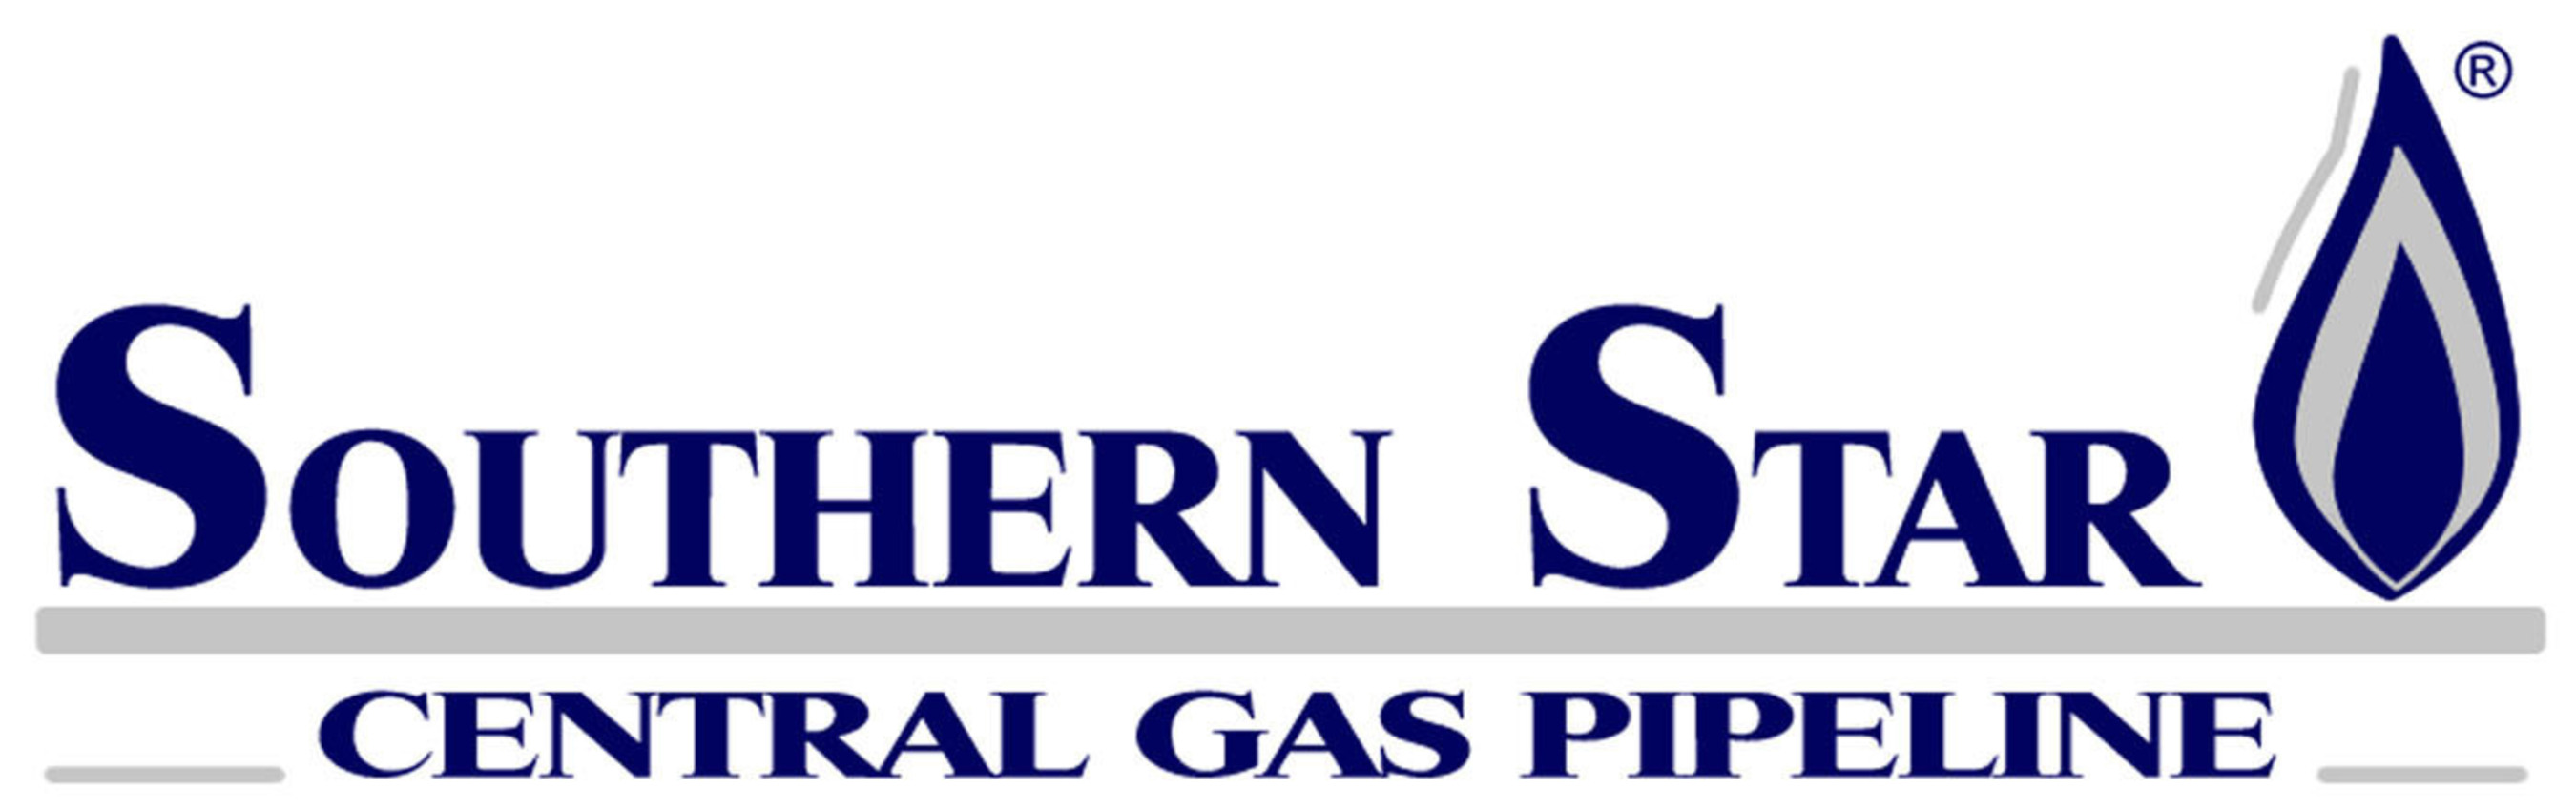 Southern Star Central Gas Pipeline, Inc. Logo (PRNewsFoto/Southern Star)